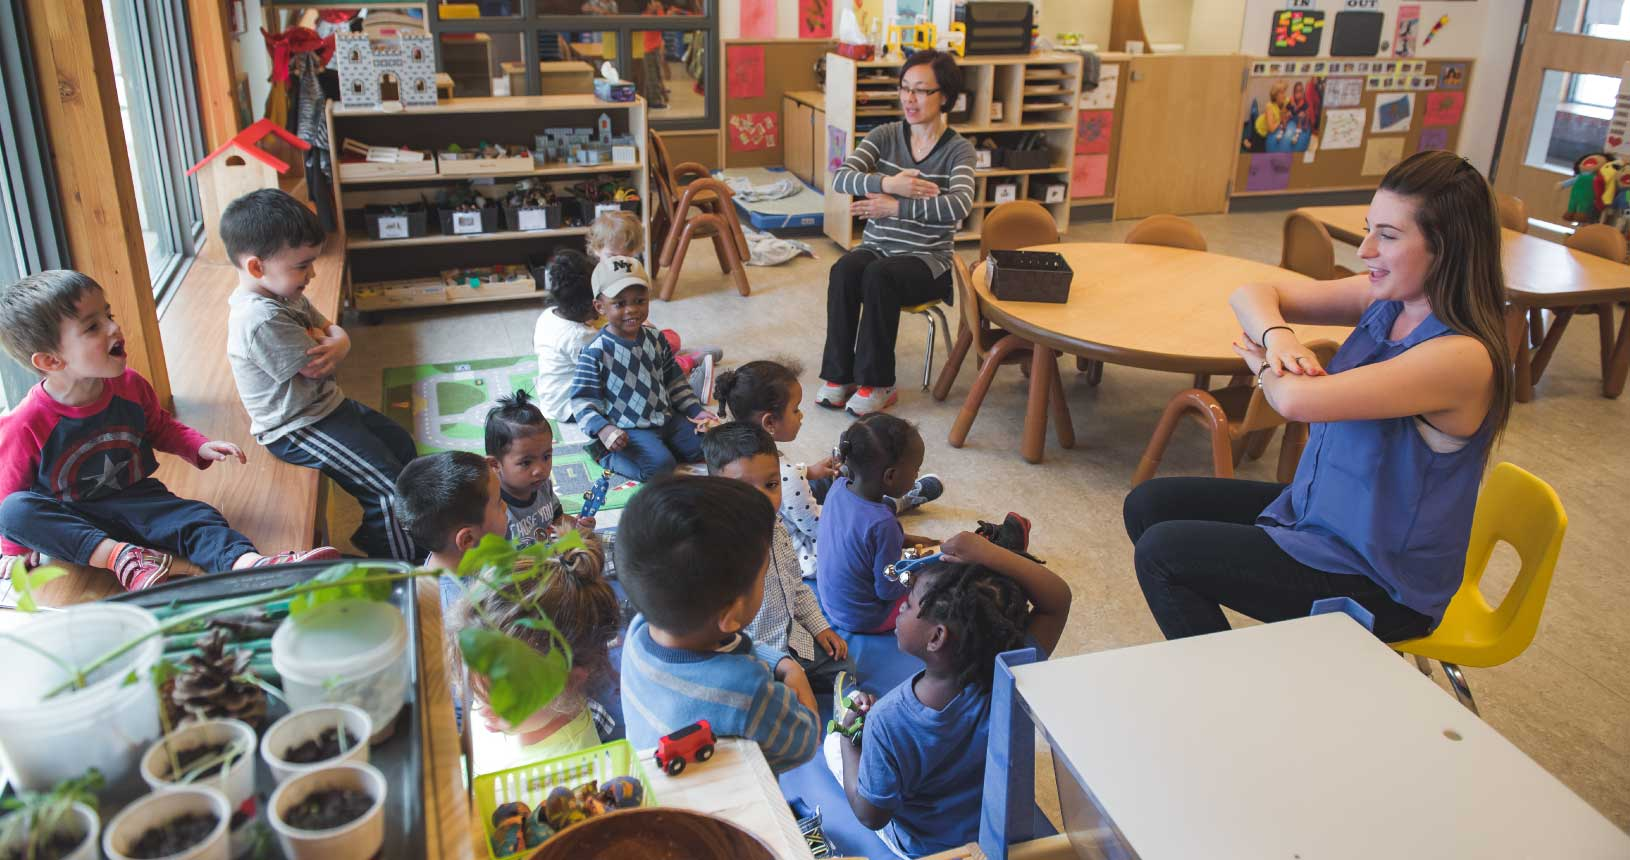 An interior shot at Dane Avenue. Two women are teaching a group of children.